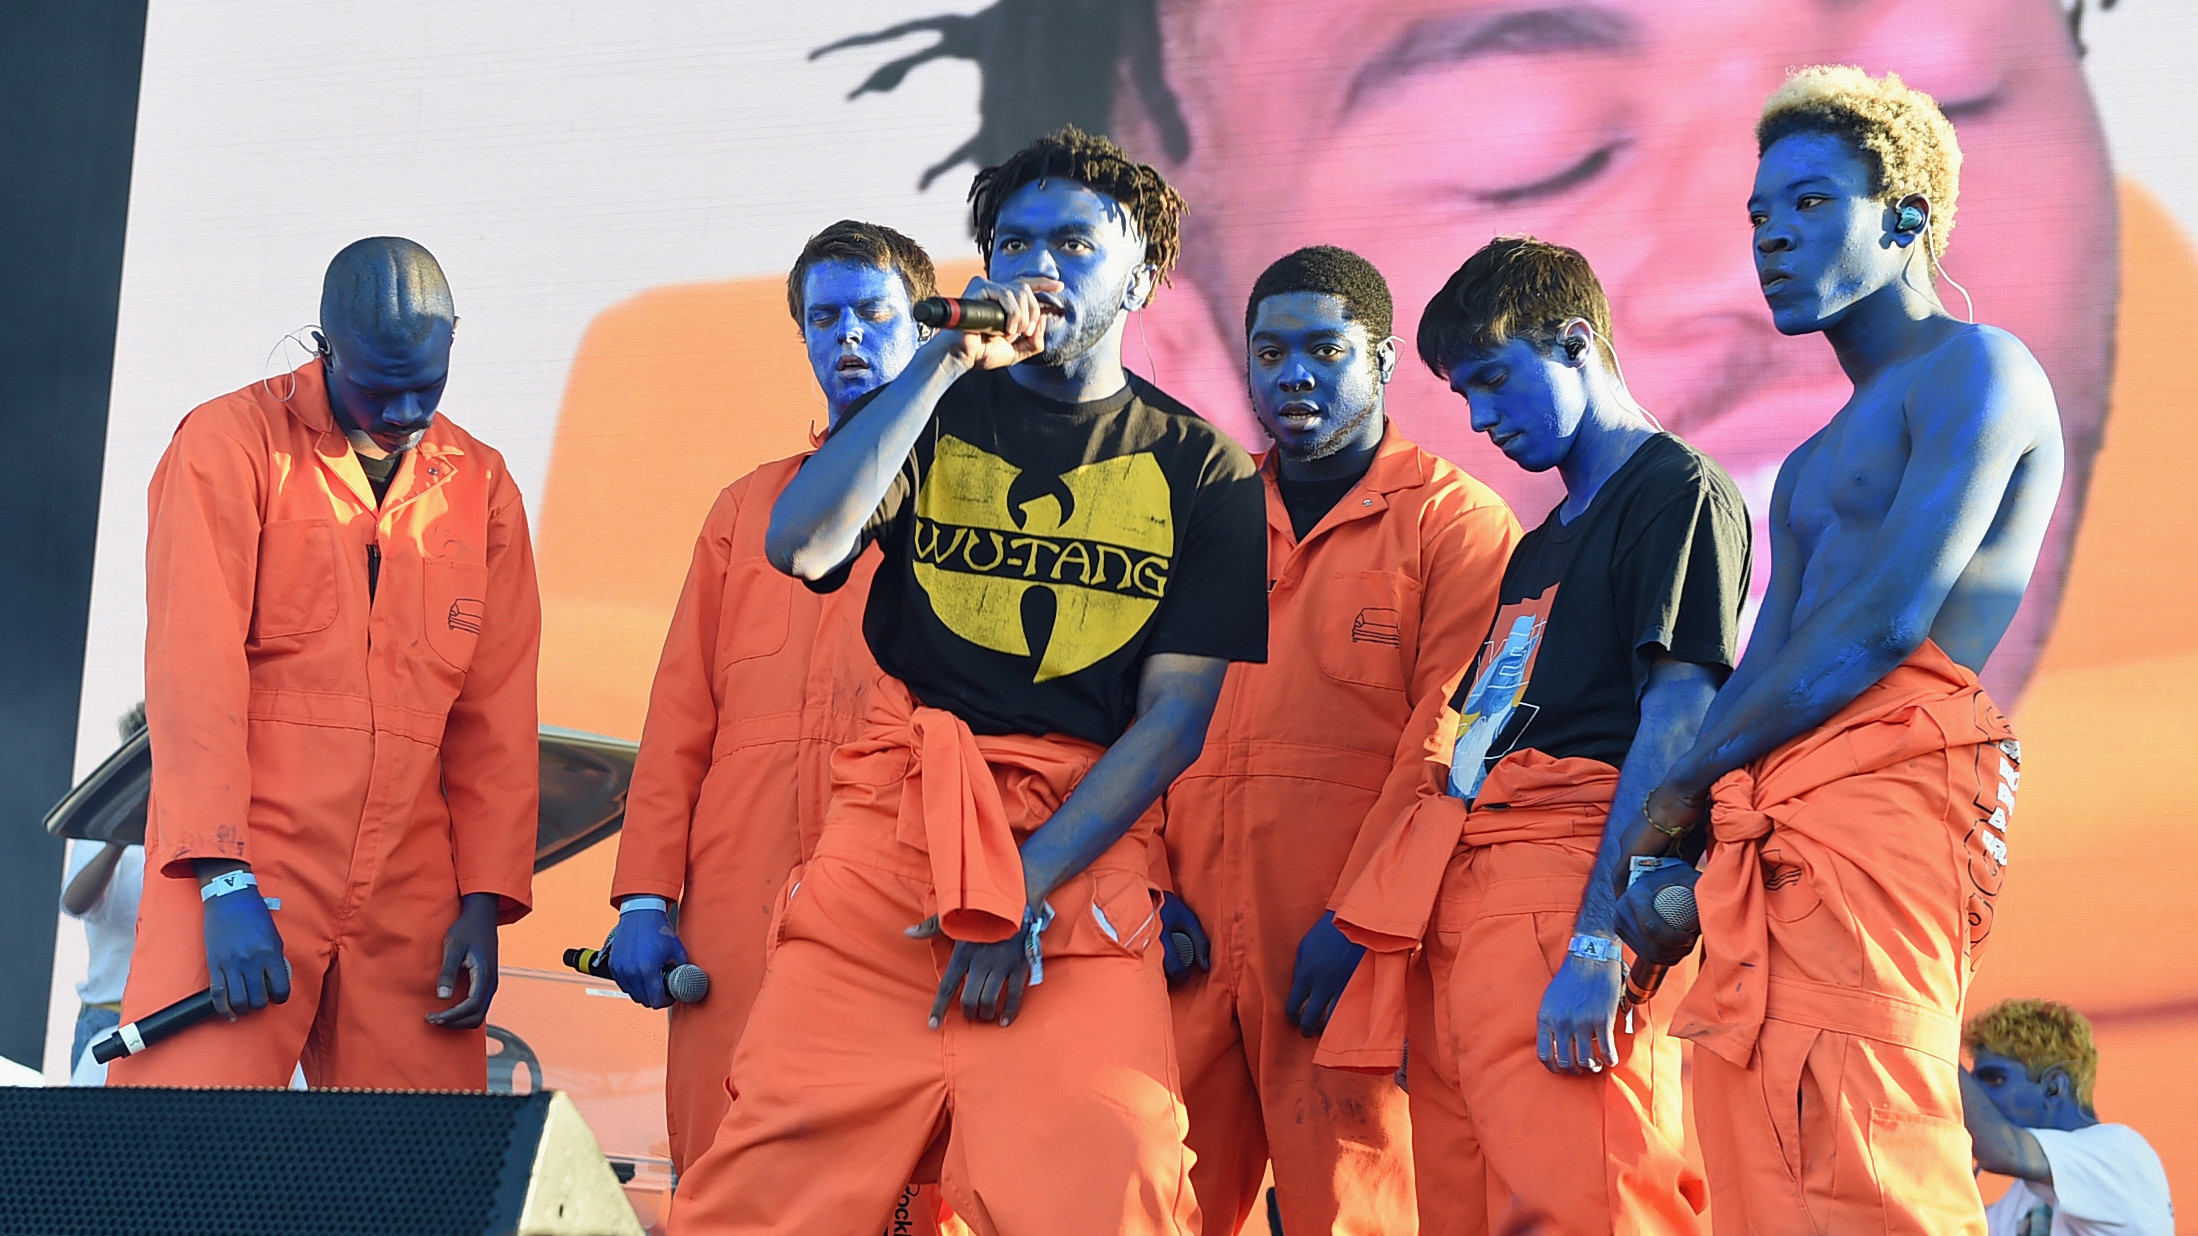 How Nick Holiday Ended up Designing Merch for Brockhampton, Shia LaBeouf